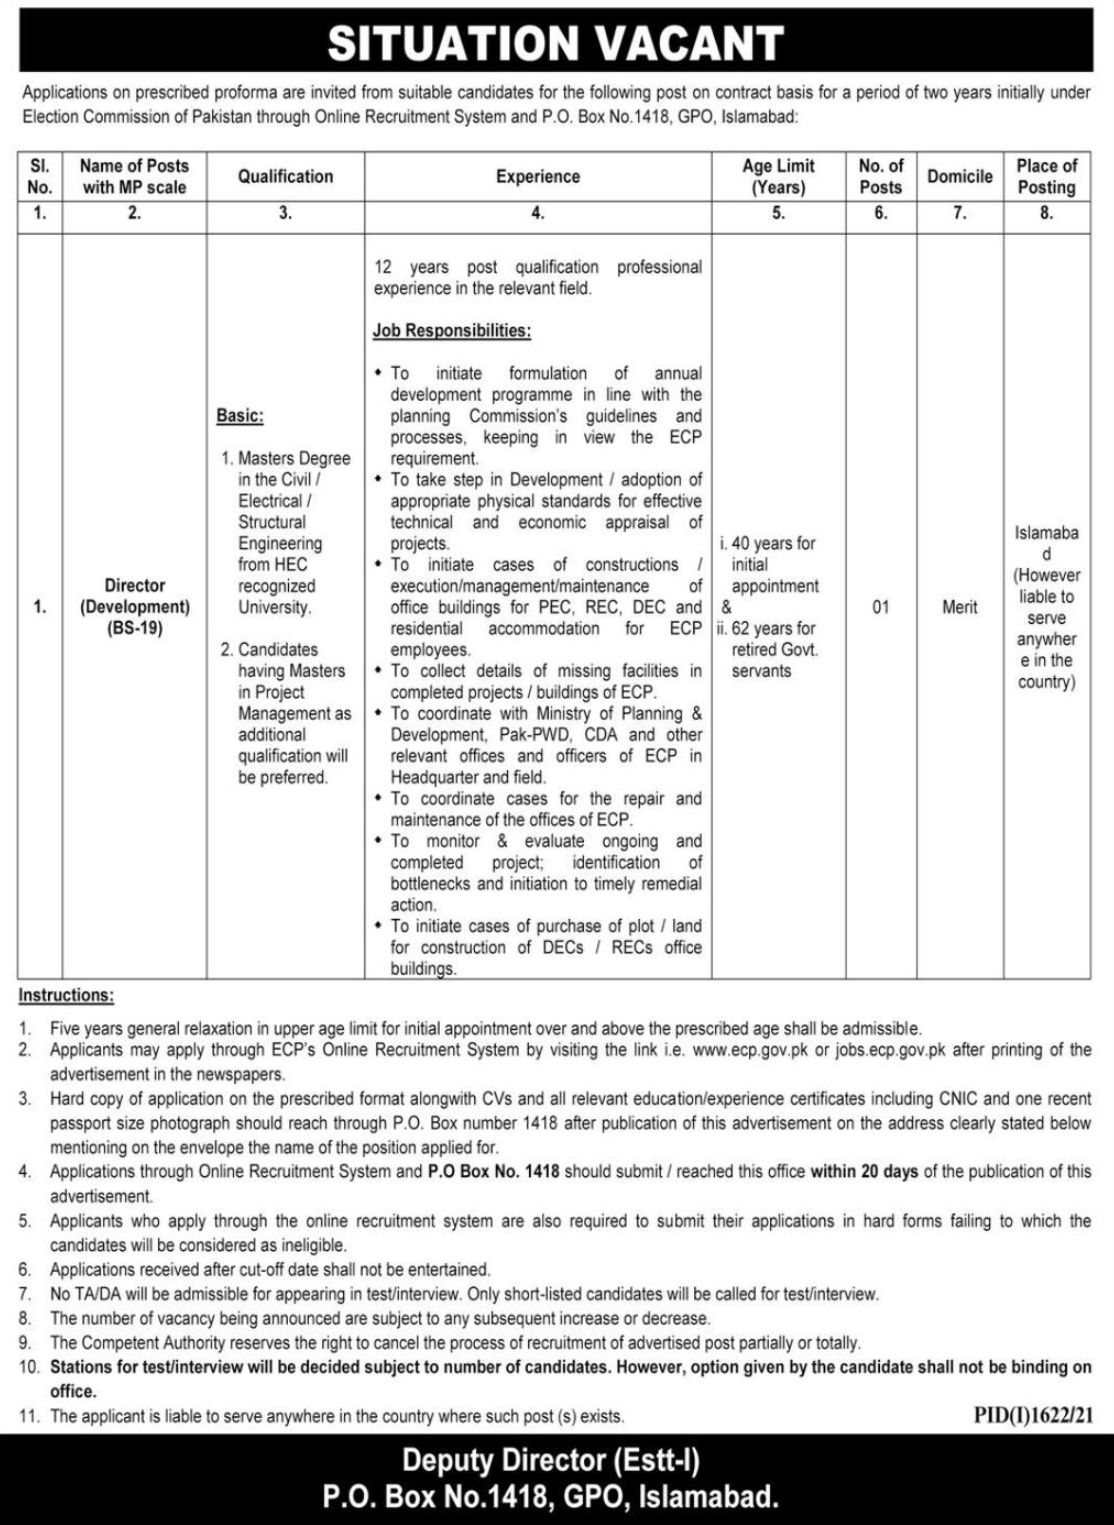 Election Commission of Pakistan Vacancies 2021 – Dailyjobs.pk 3